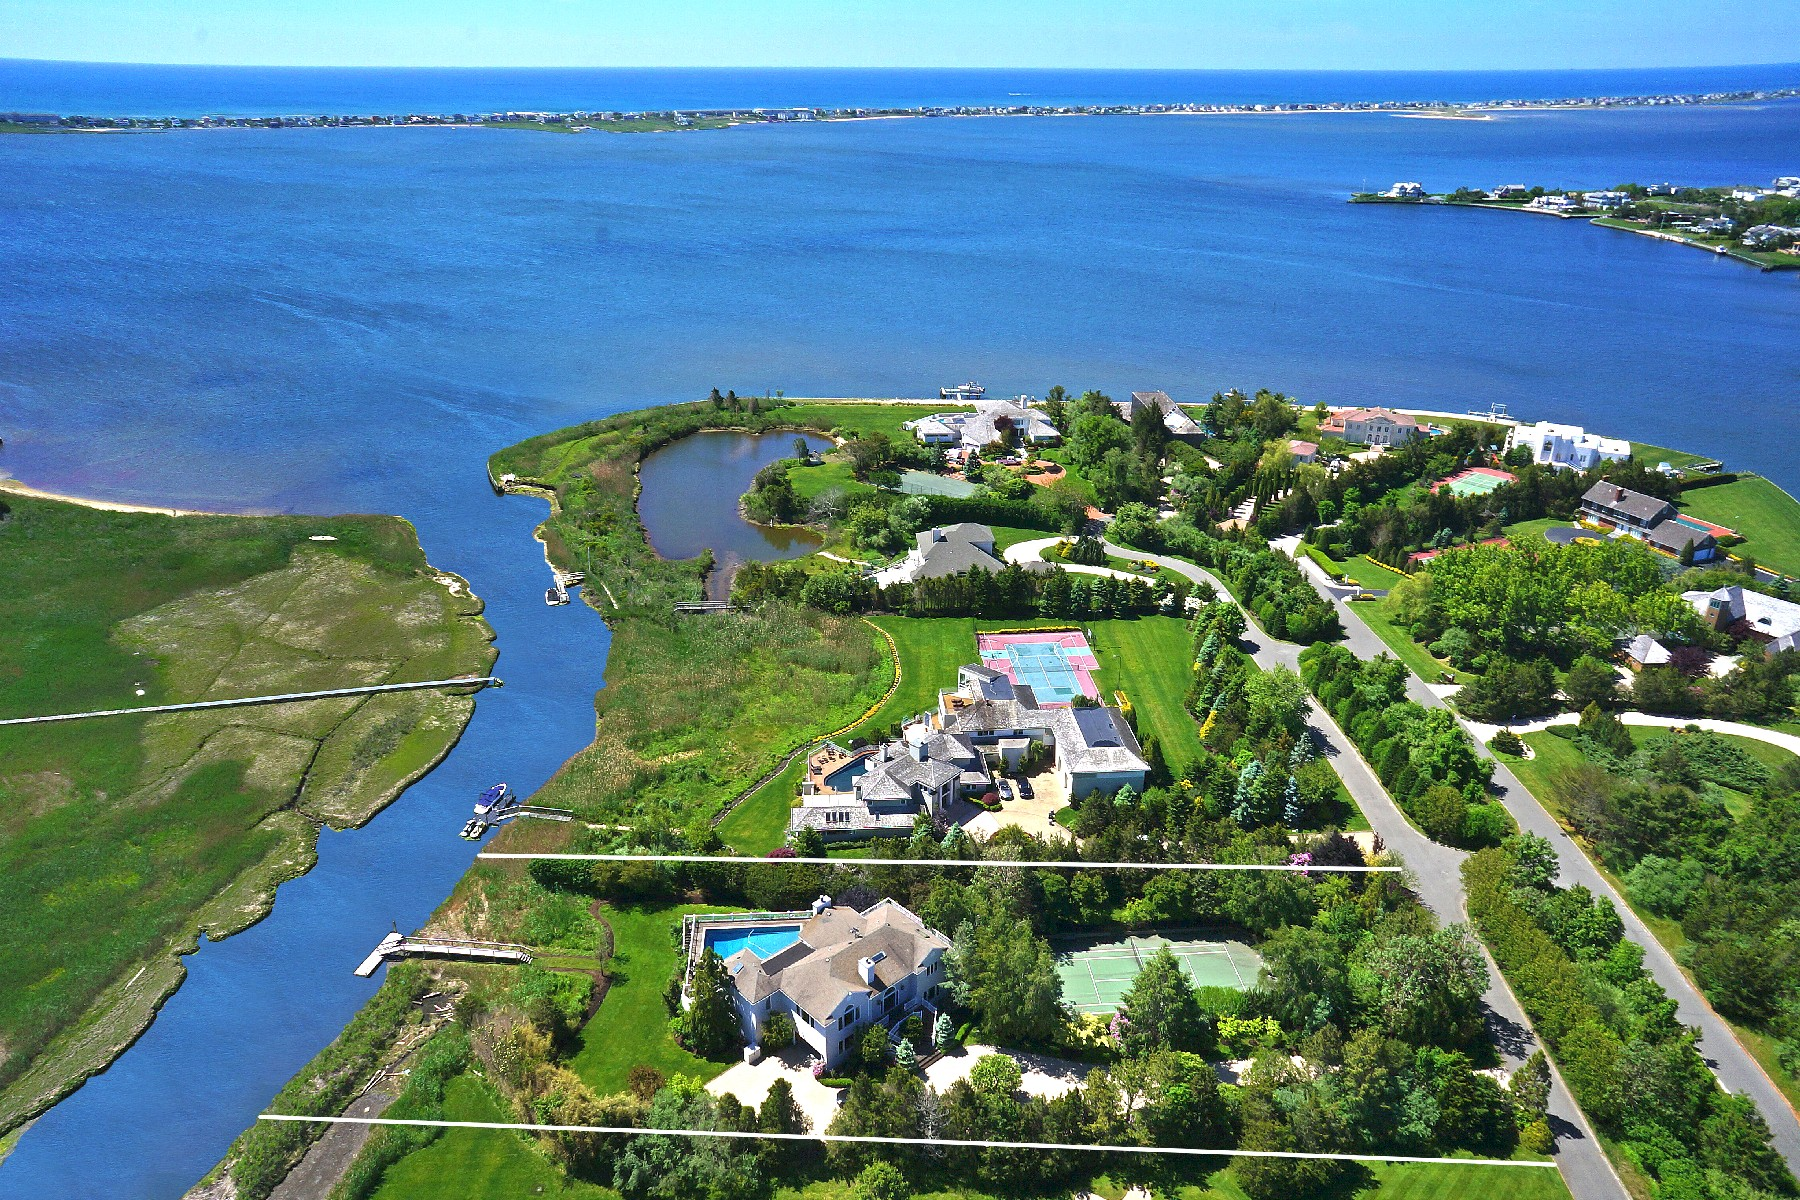 Single Family Home for Sale at Waterfront - Dock-Pool-Tennis 12 Pine Tree Lane Westhampton, New York, 11977 United States